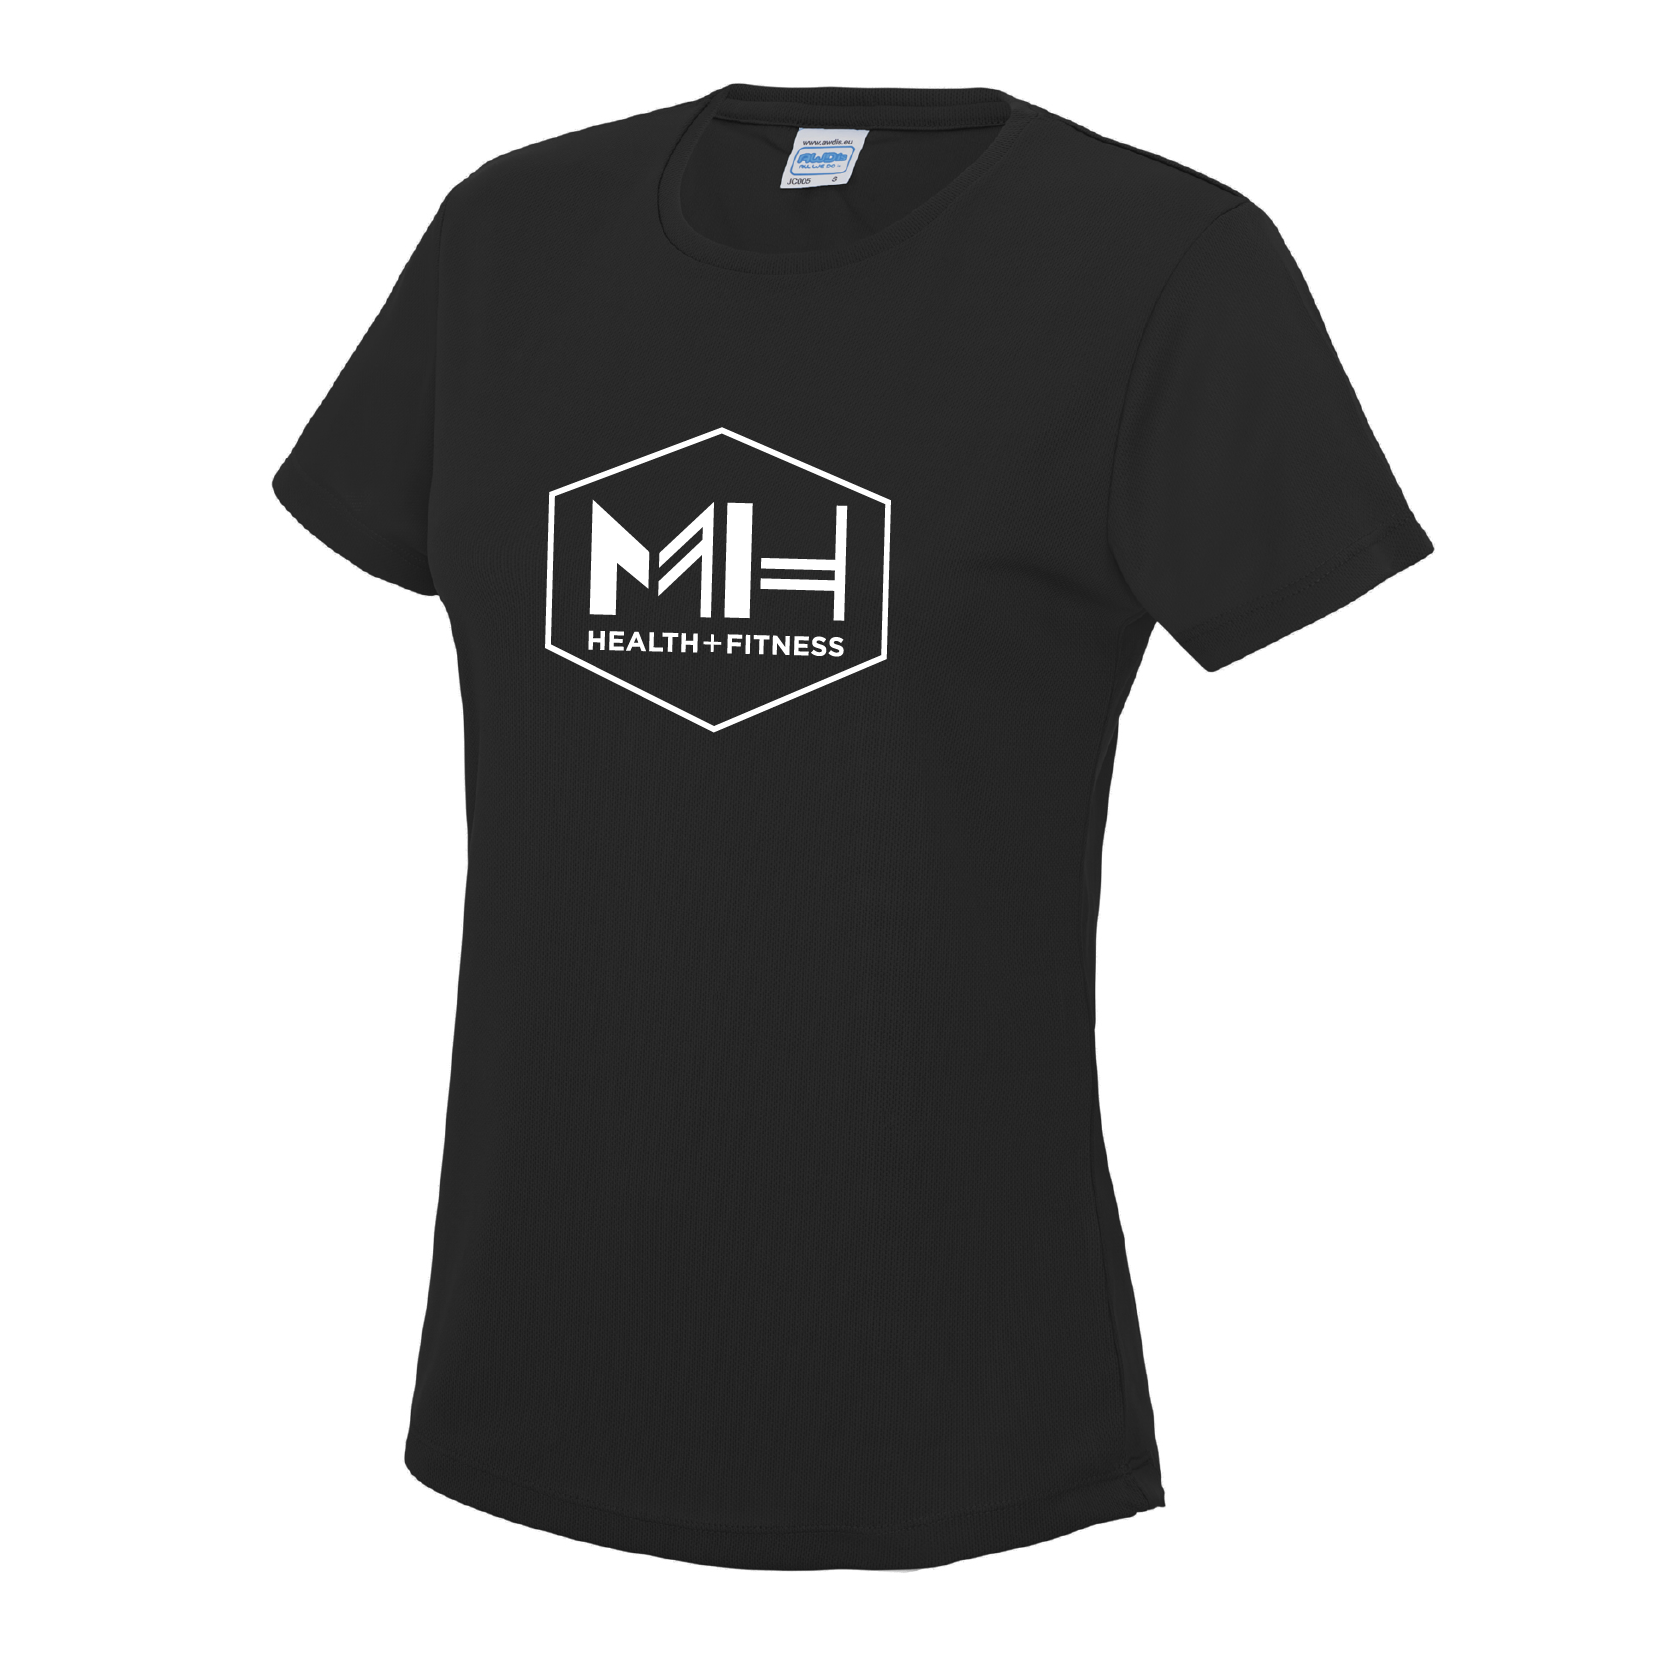 MH Health & Fitness Ladies Fit T-Shirt